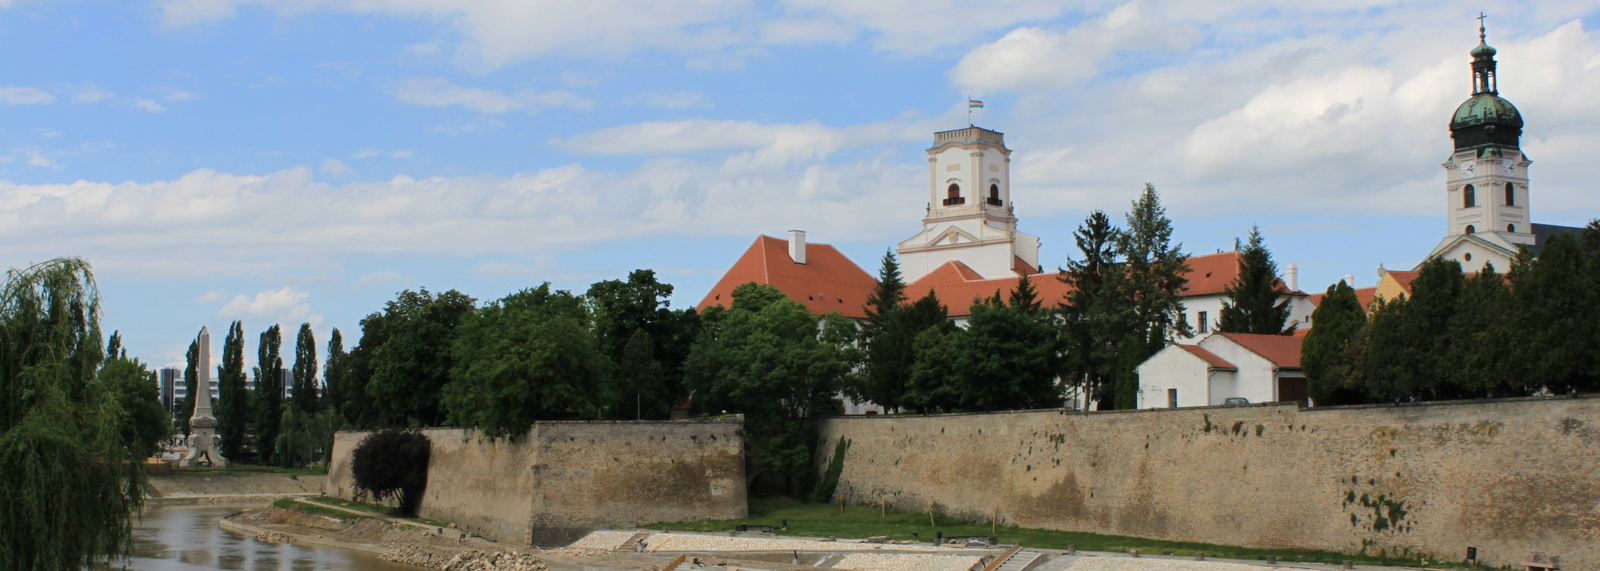 Tower and Basilica, Gyor